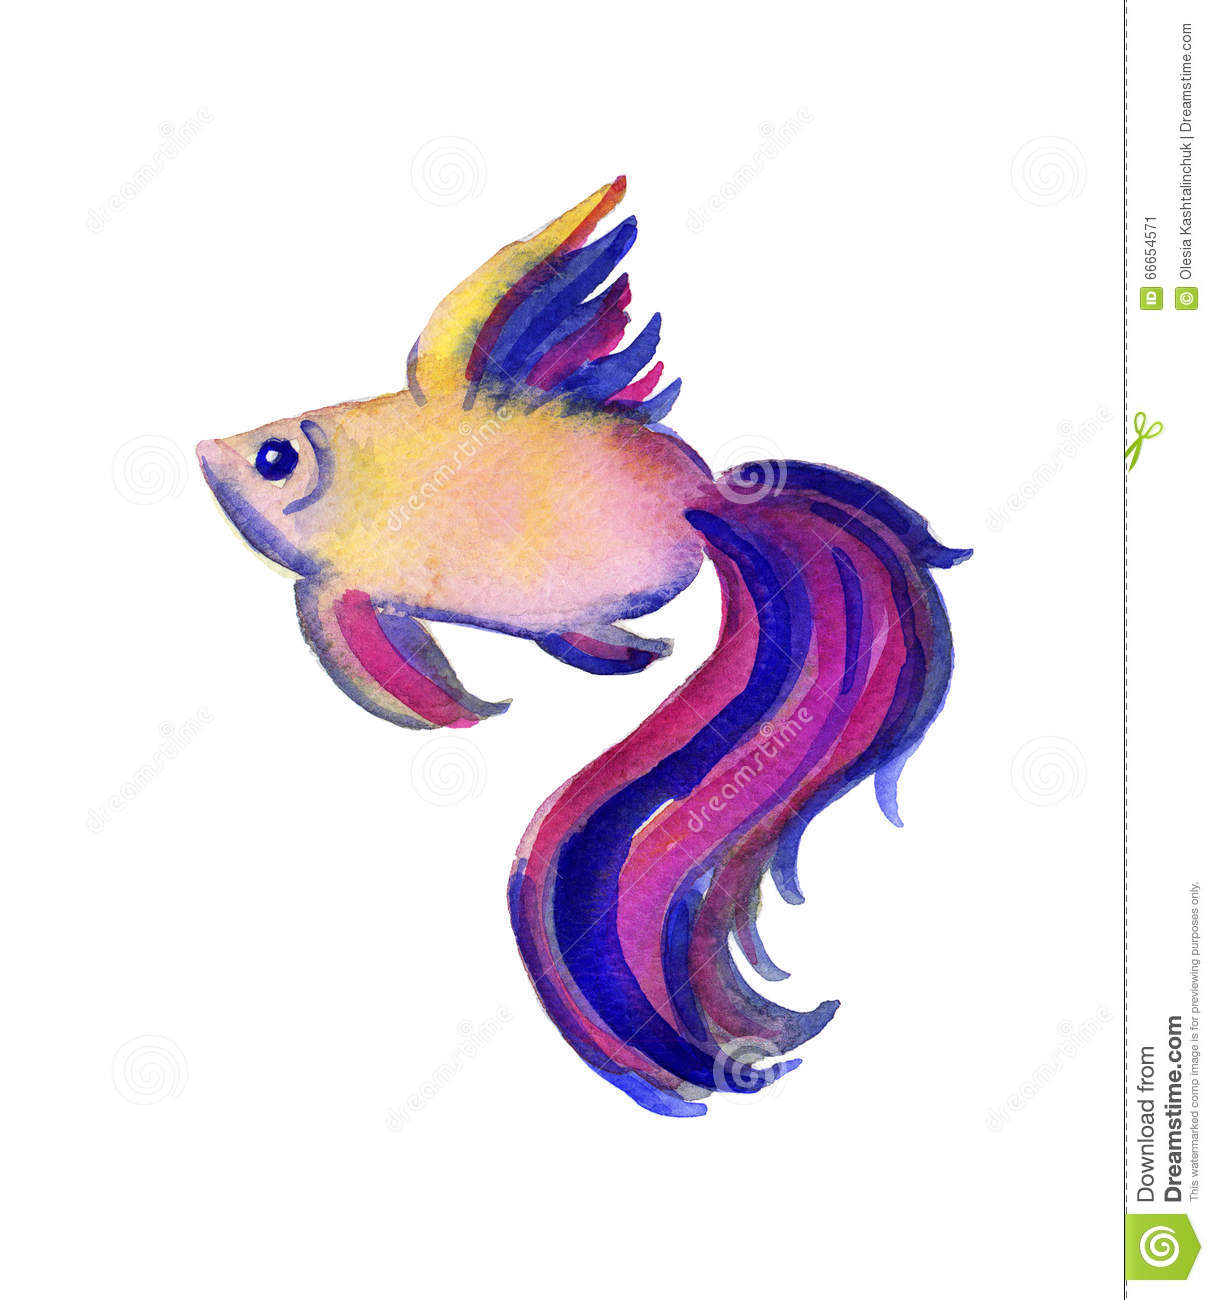 Beautiful Watercolor Vibrant Picture Of A Fish Stock Illustration.